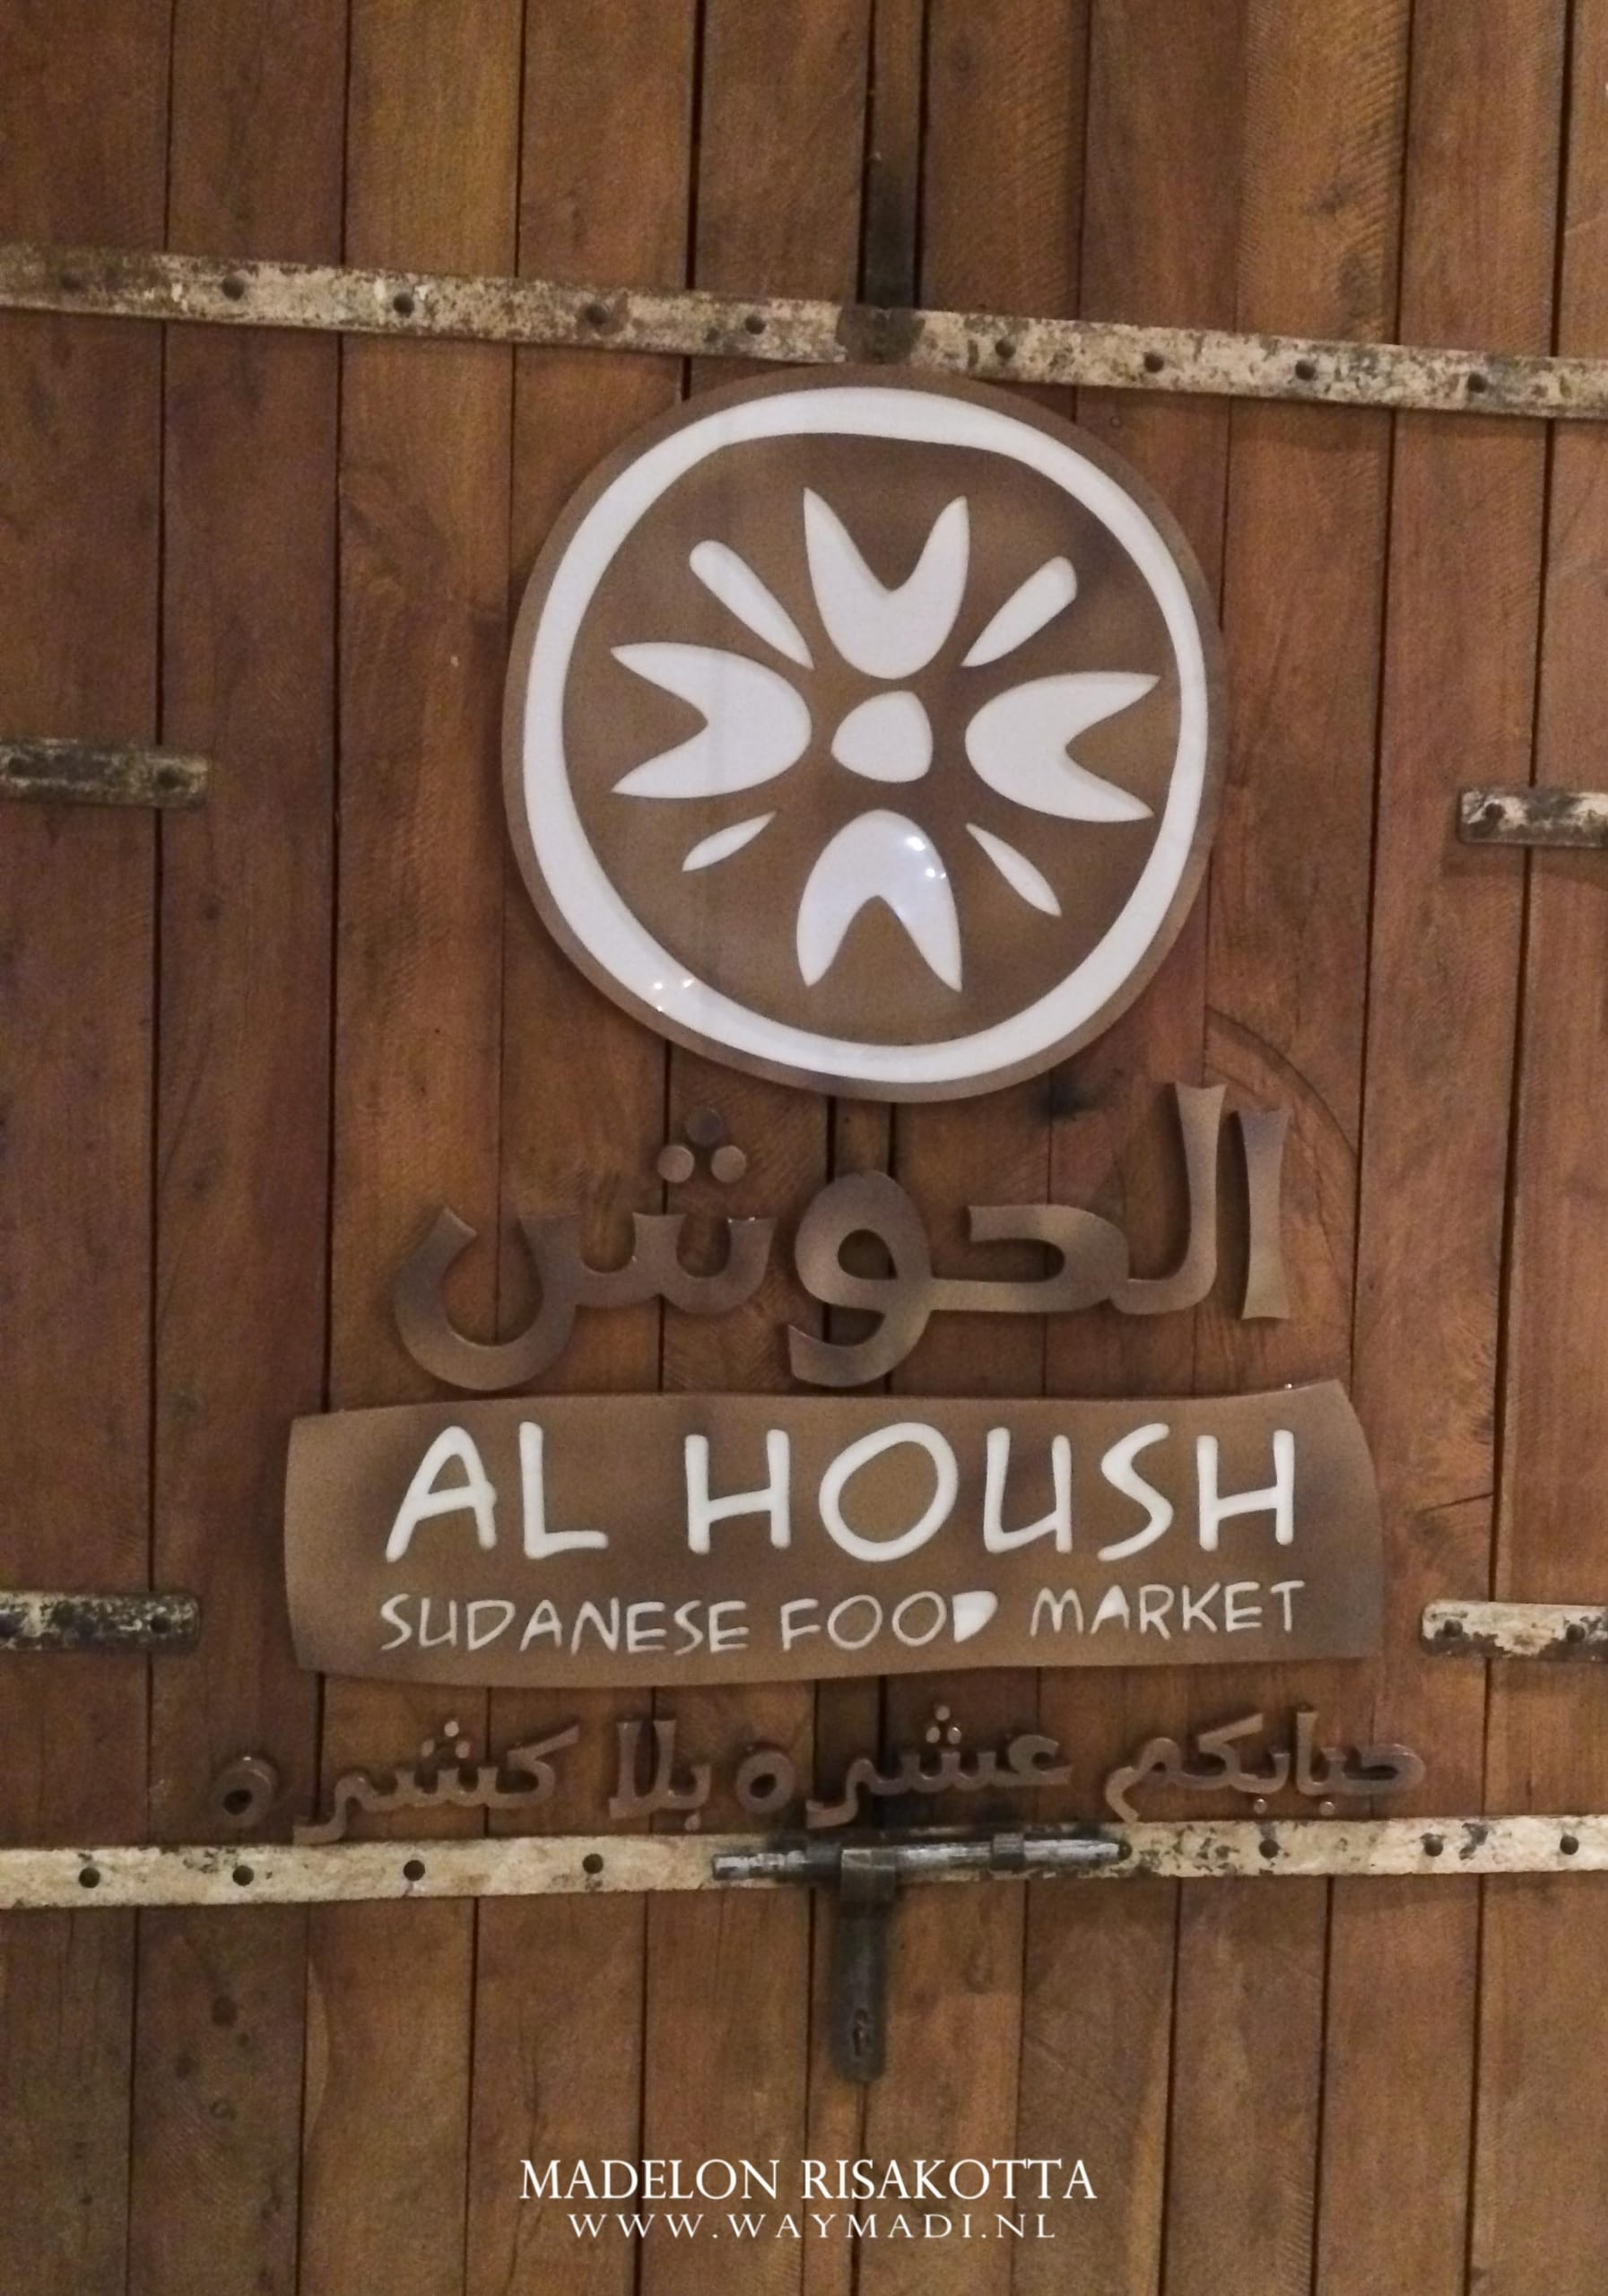 #WaymadiFood Sudan: Restaurant Al Housh